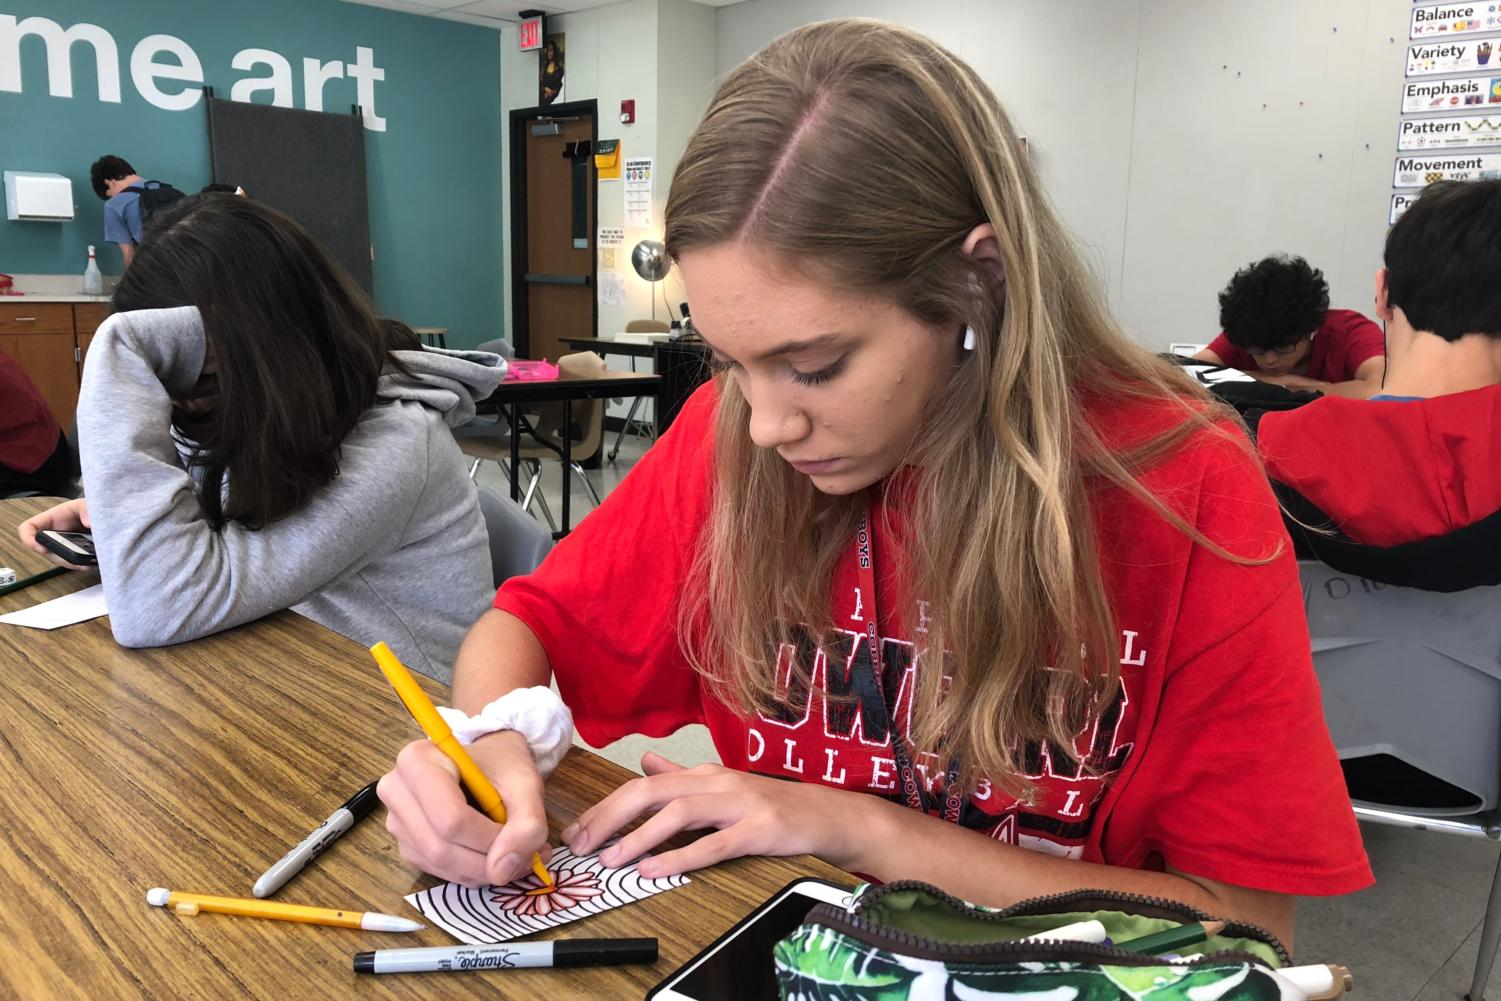 Coppell High School sophomore Christiana Reimer illustrates a flower on a notecard in David Bearden's second period Art I class on Oct. 29 for the geocache art experiment. In the project, students hide their artworks around the school and leave hints for other students to find them.